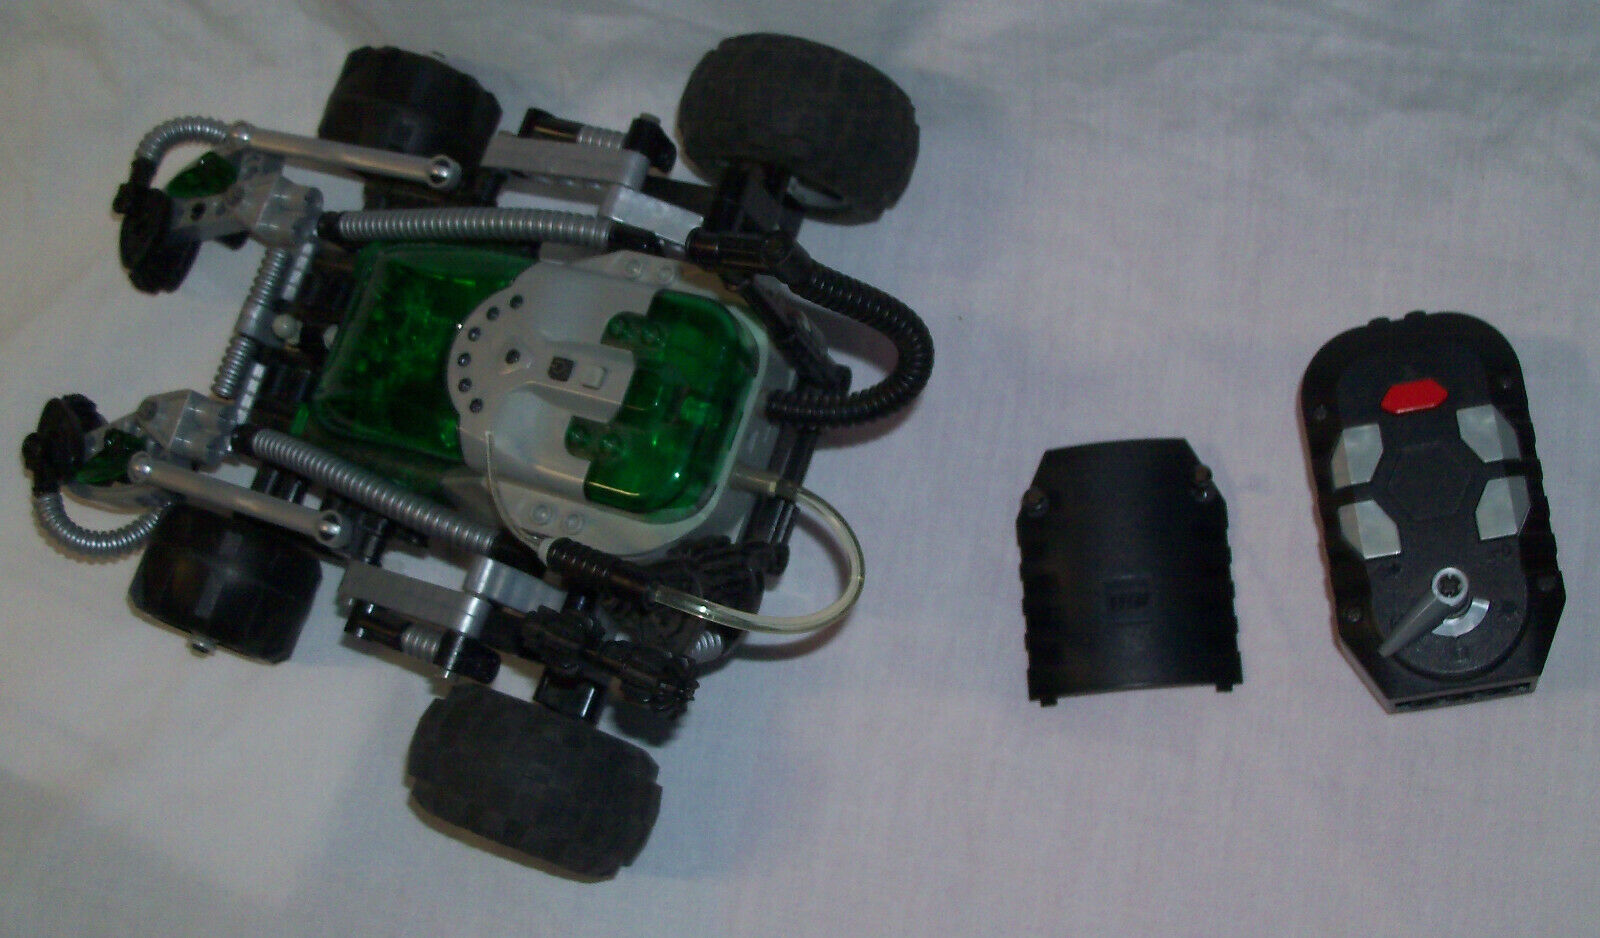 WITH scatola Vintage LEGO  SPYBOTICS Technojaw T55  3809 & RC - verde MINDSTORMS 2002  outlet